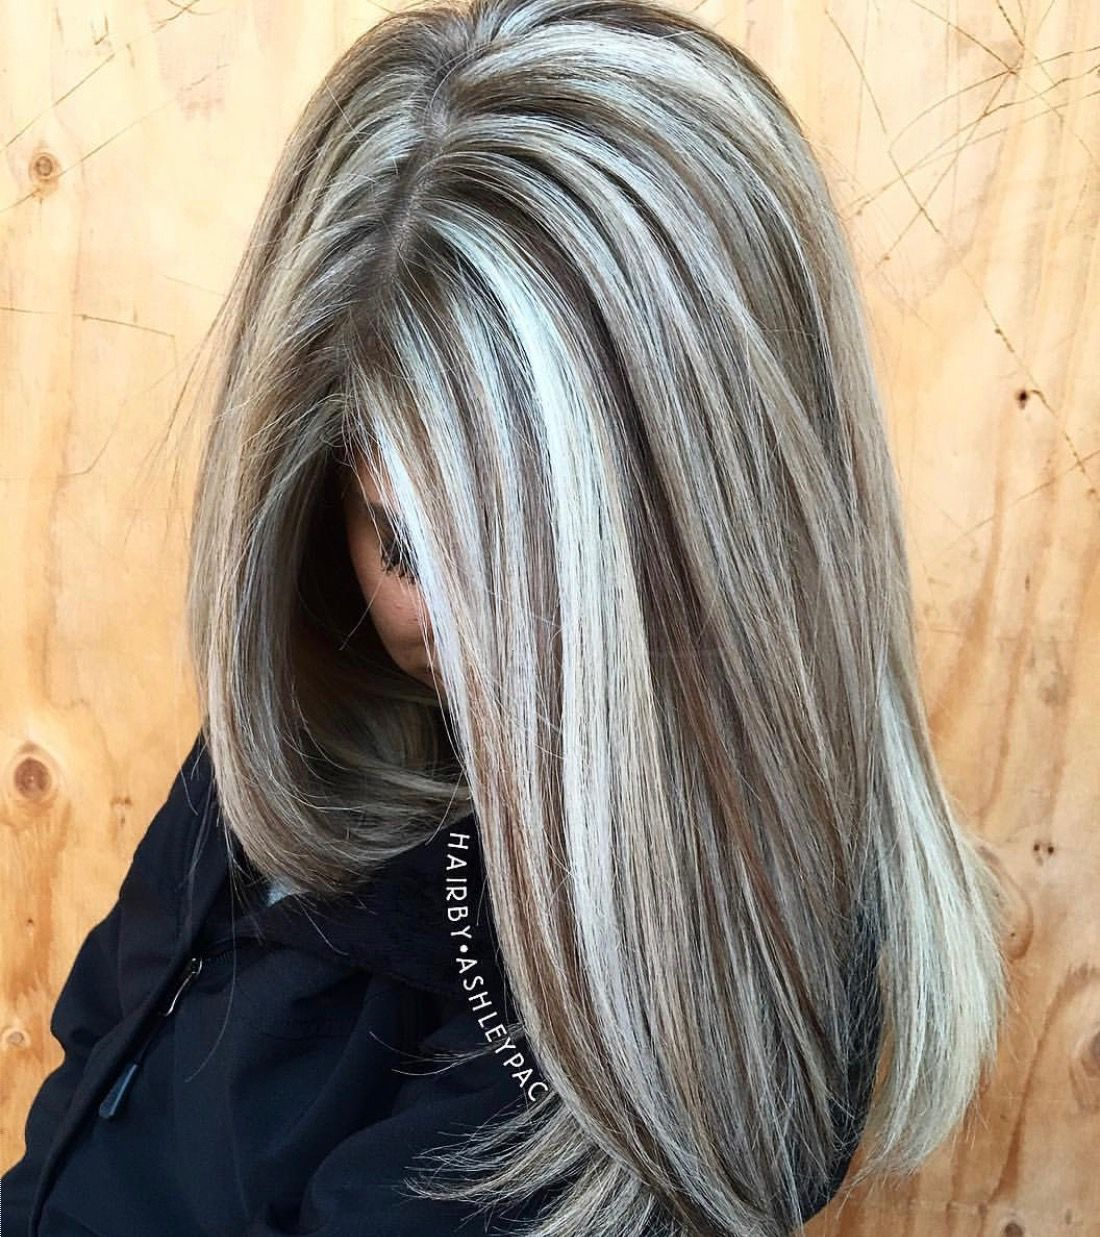 Very complex hair coloring, but the result is captivating at a glance